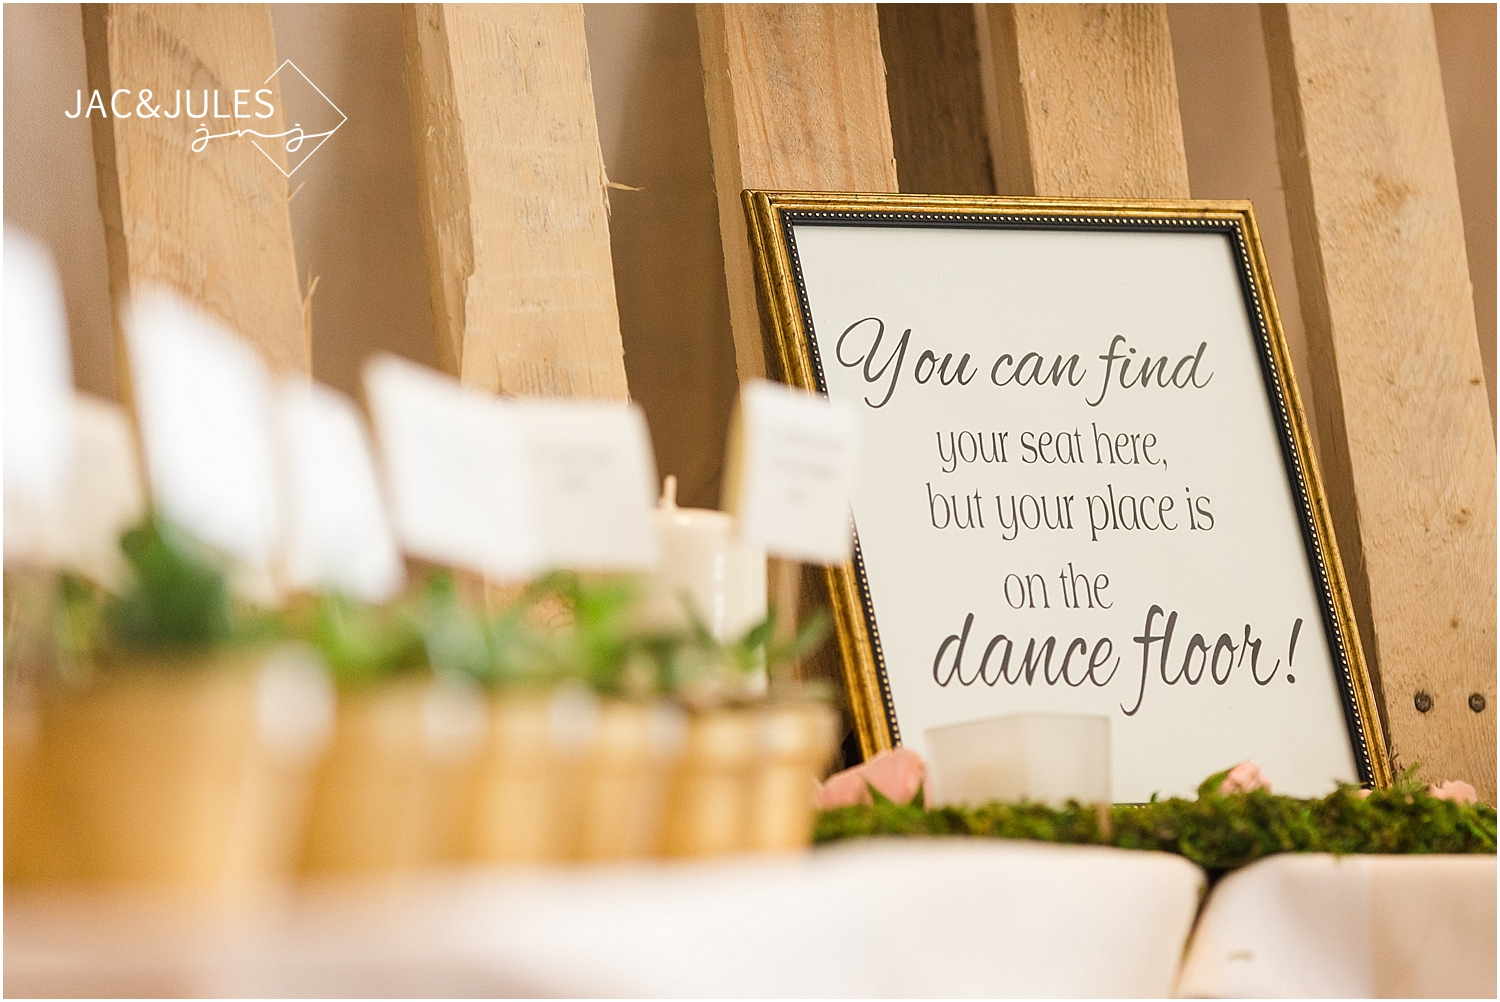 jacnjules photographs custom sign for the wedding guests at Oyster Point in Red Bank NJ